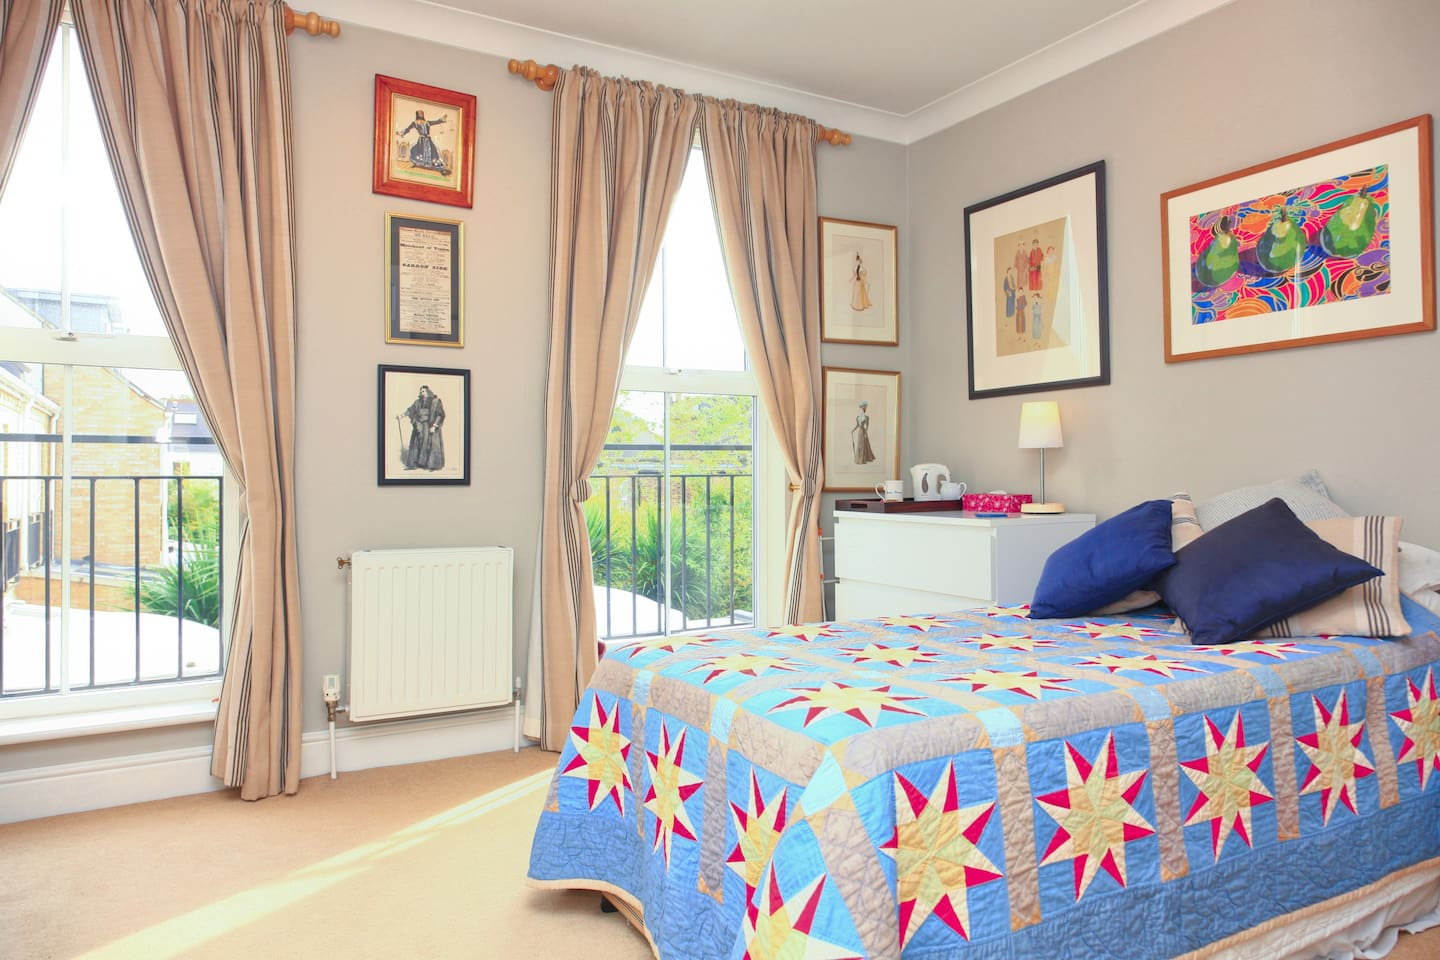 A light airy room overlooking the garden. Very quiet and warm.